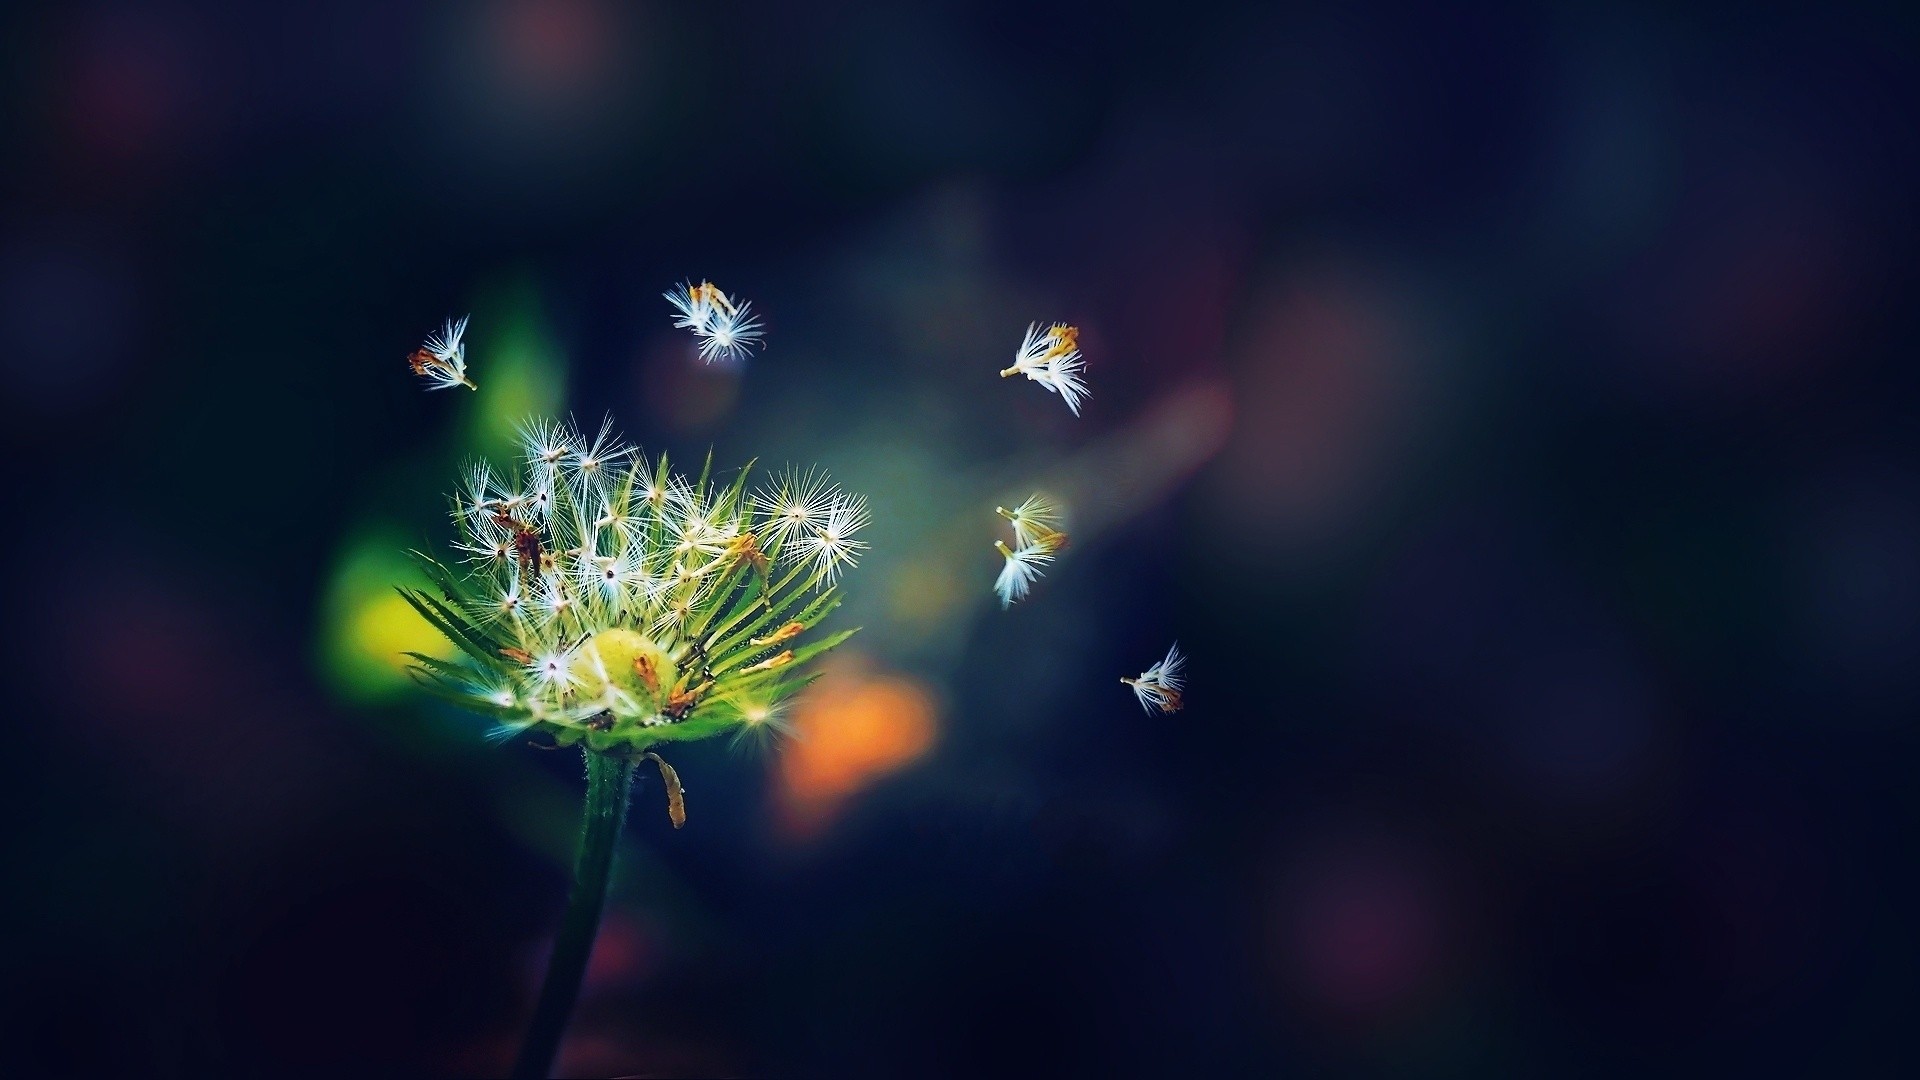 Amazing Dandelion Seeds Wallpaper